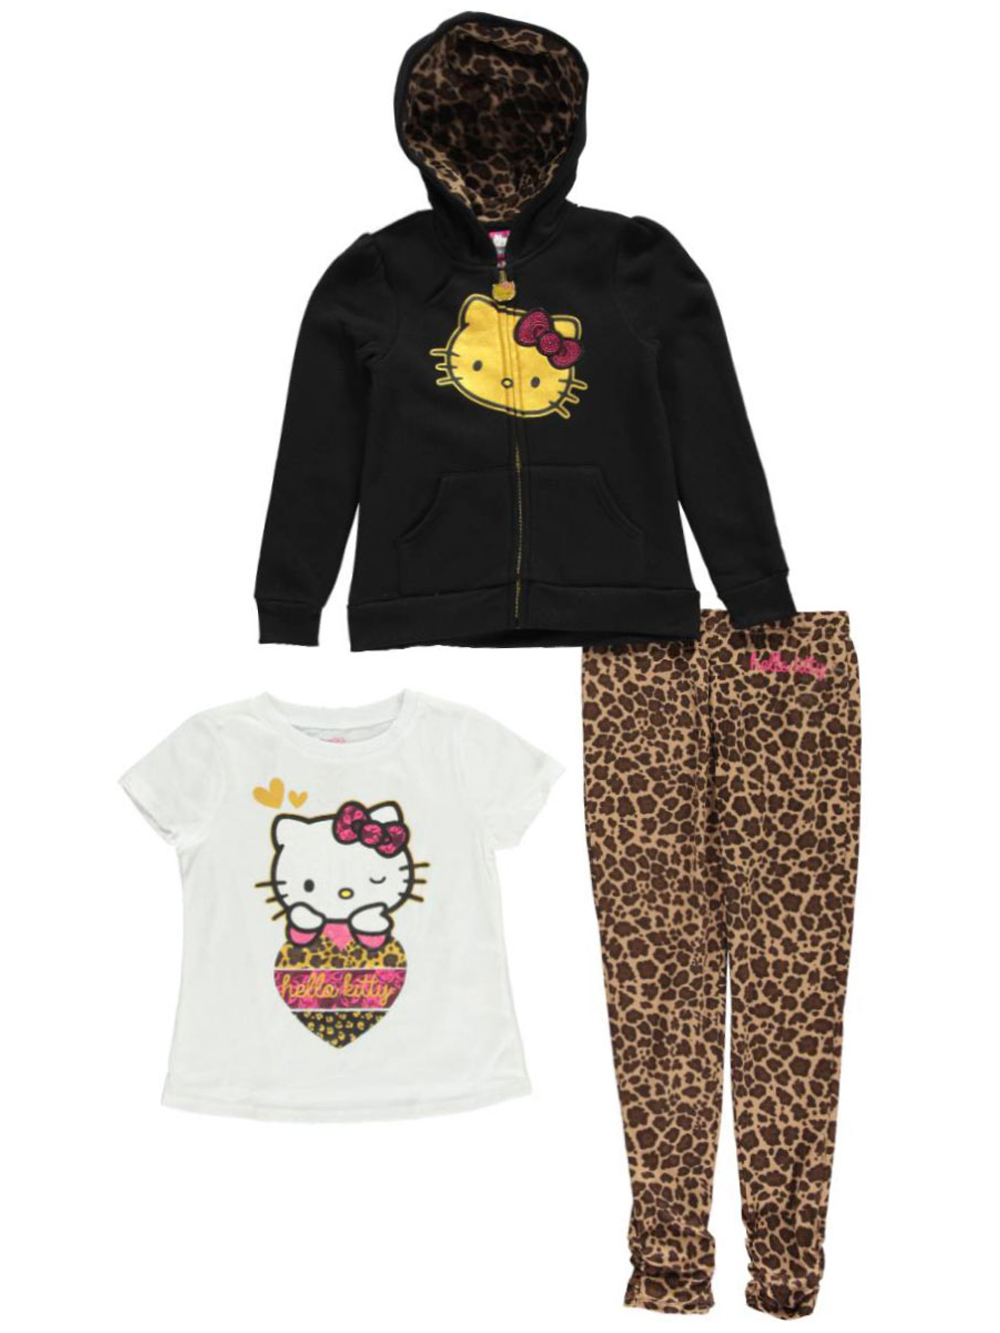 Image of Hello Kitty Little Girls Toddler Kitty Wink 3Piece Outfit Sizes 2T  4T  black 2t